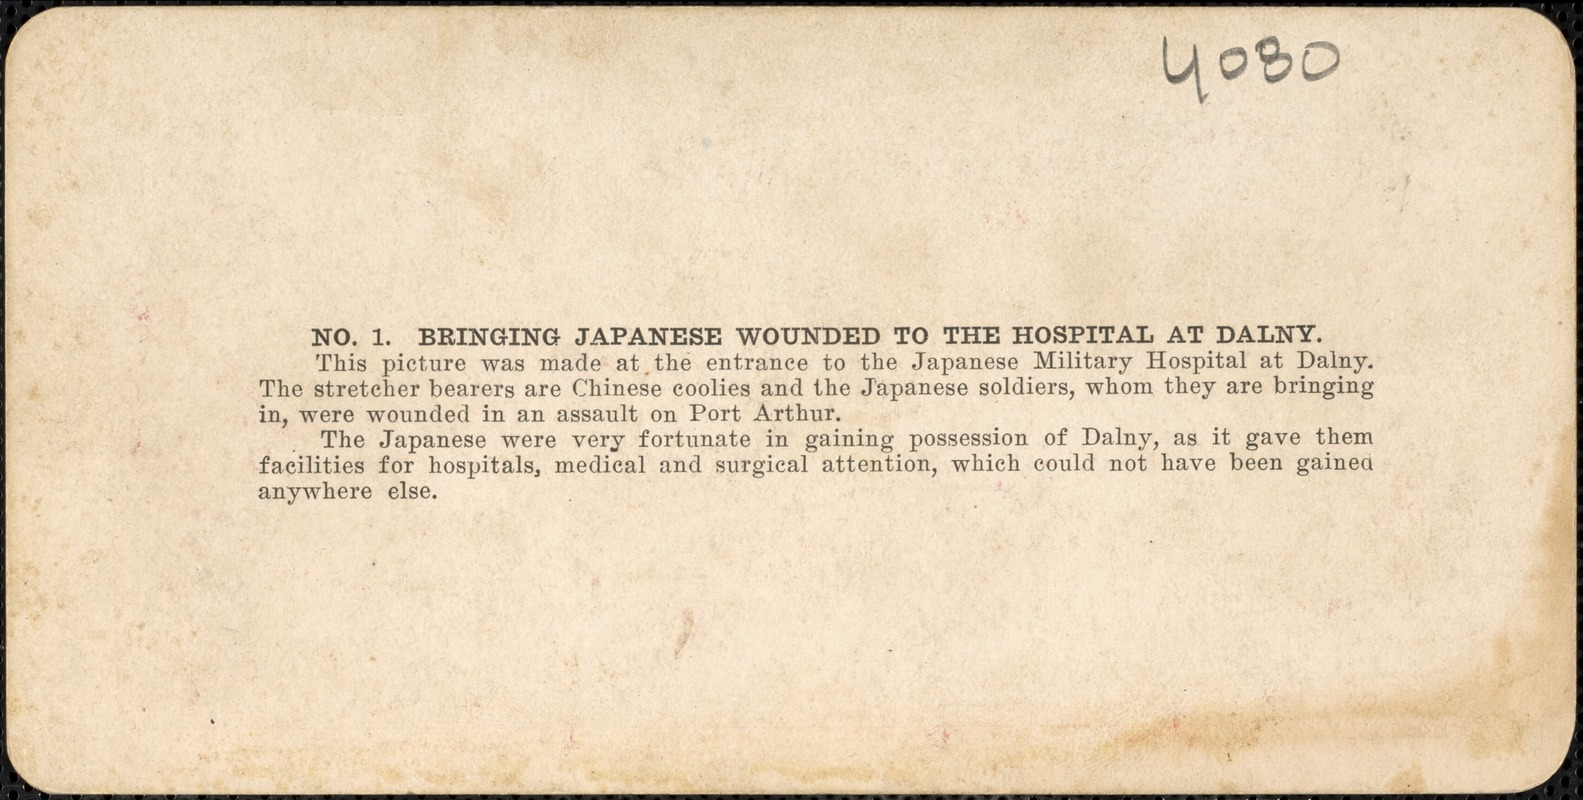 Bringing Japanese wounded to the hospital at Dalny